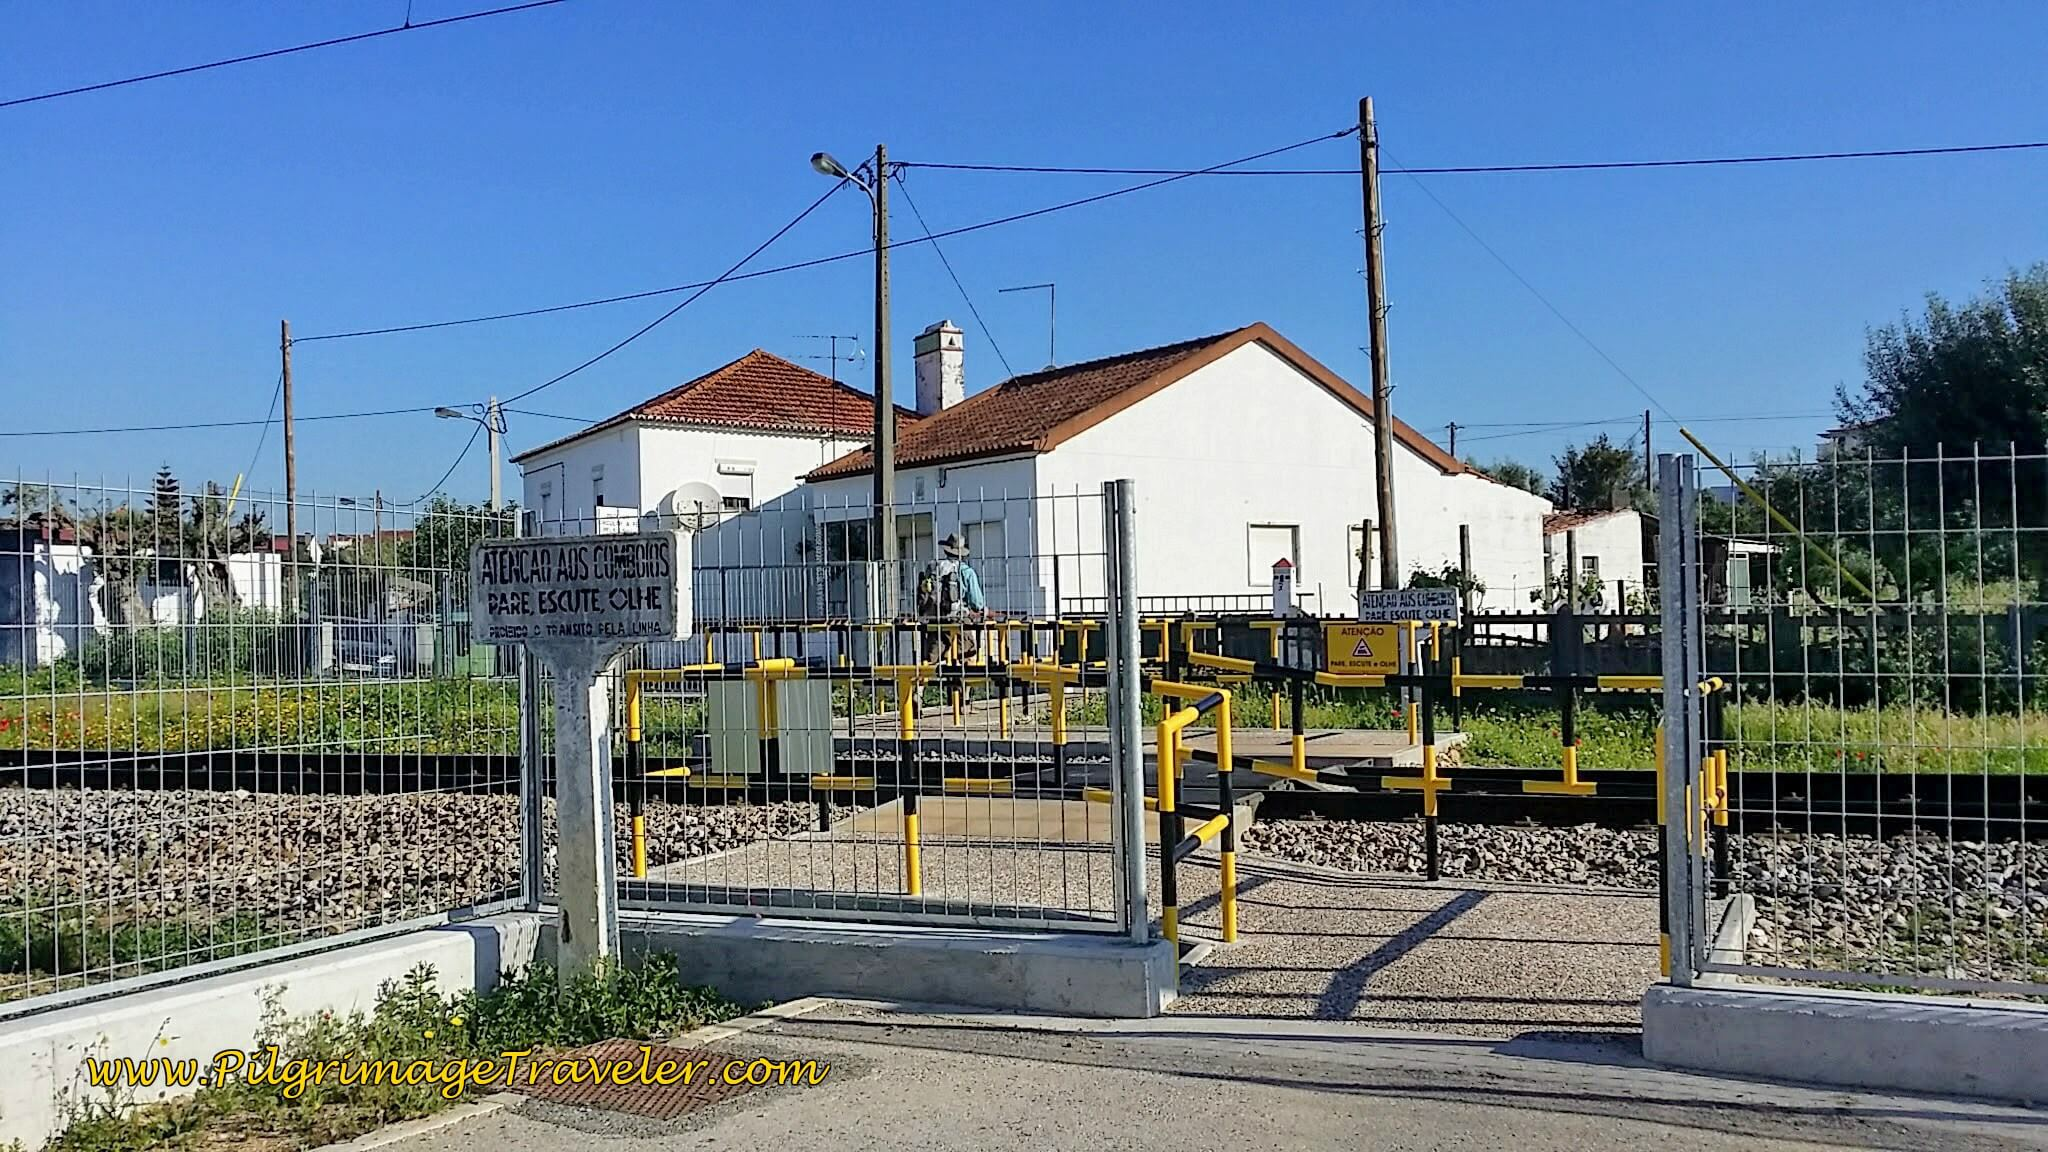 Pedestrian Railroad Crossing in Vila Nova da Barquinha, Portugal